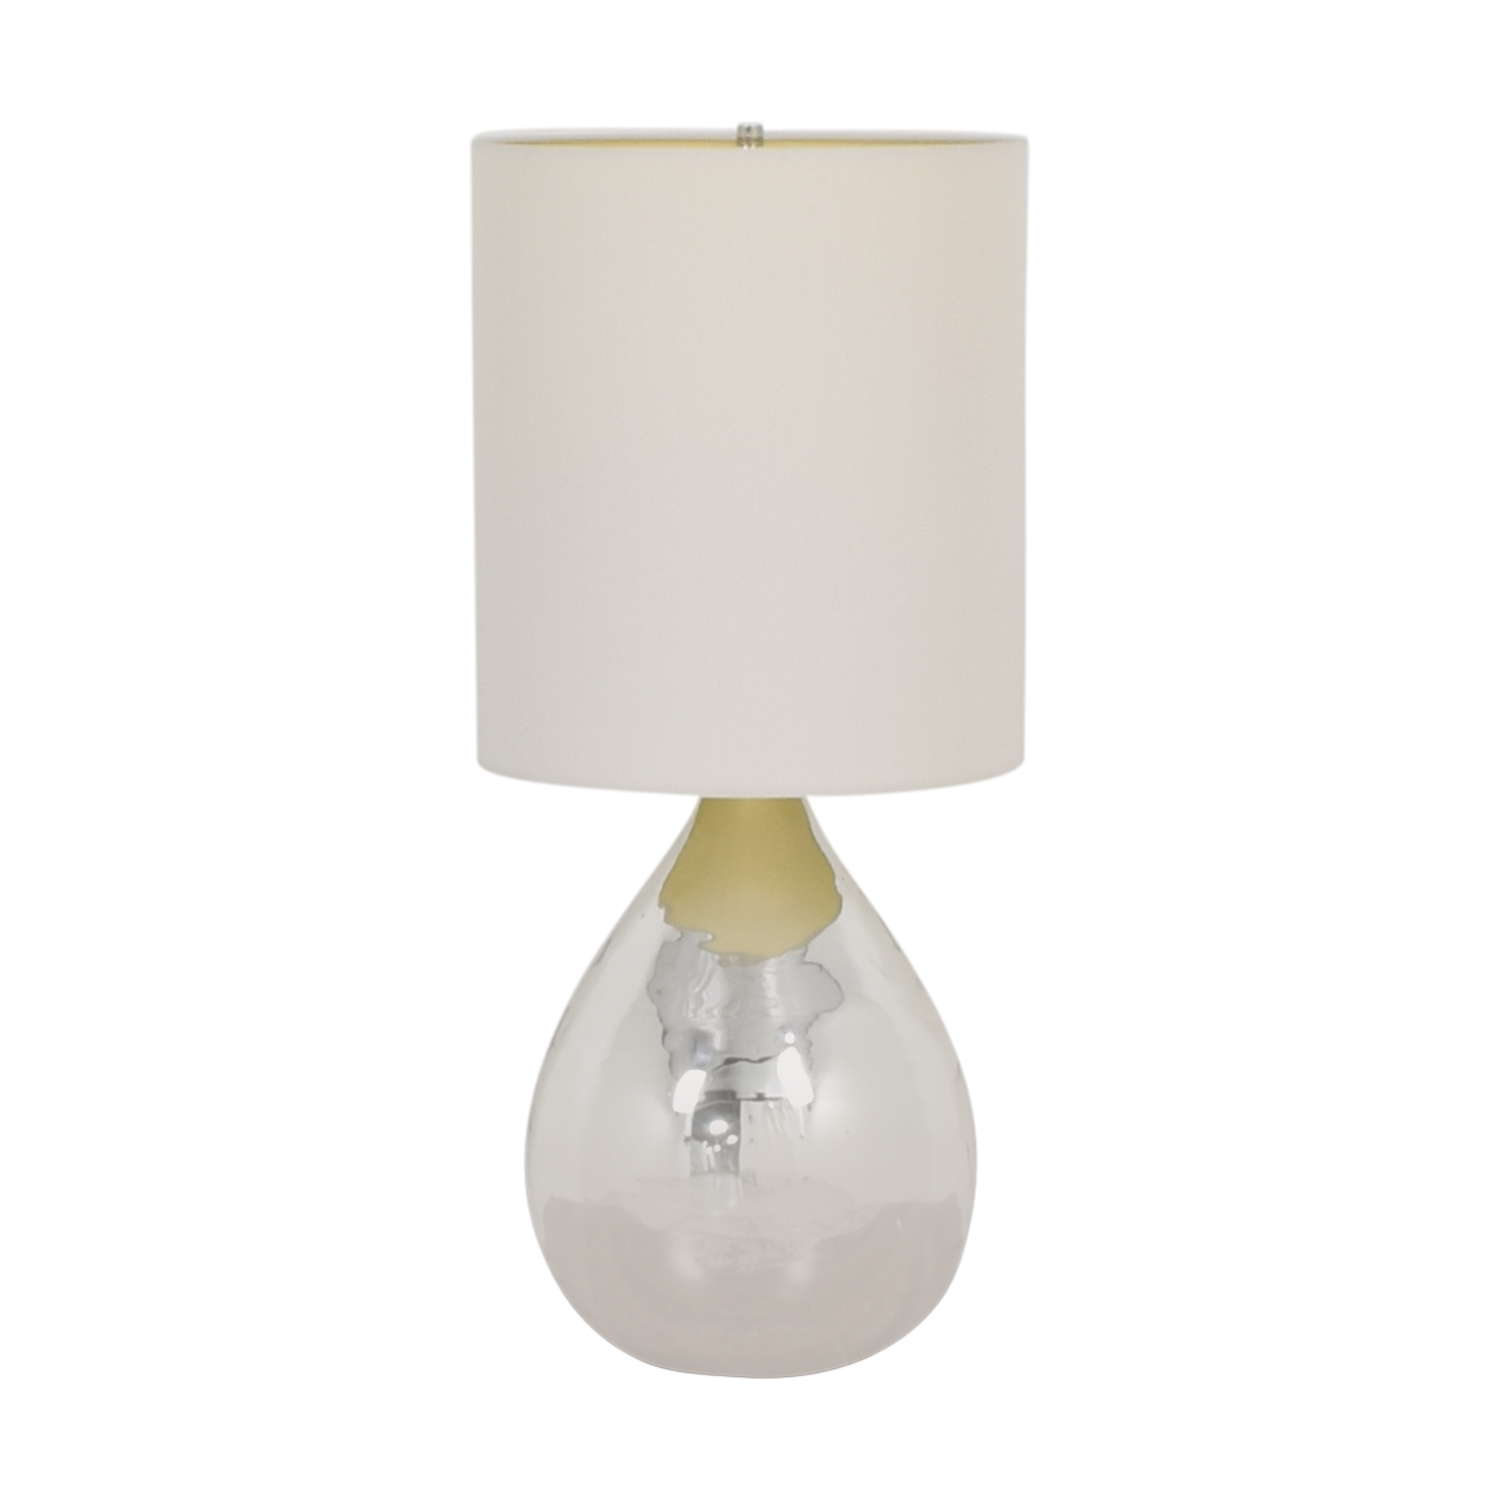 West Elm West Elm Mercury Jug Table Lamp pa